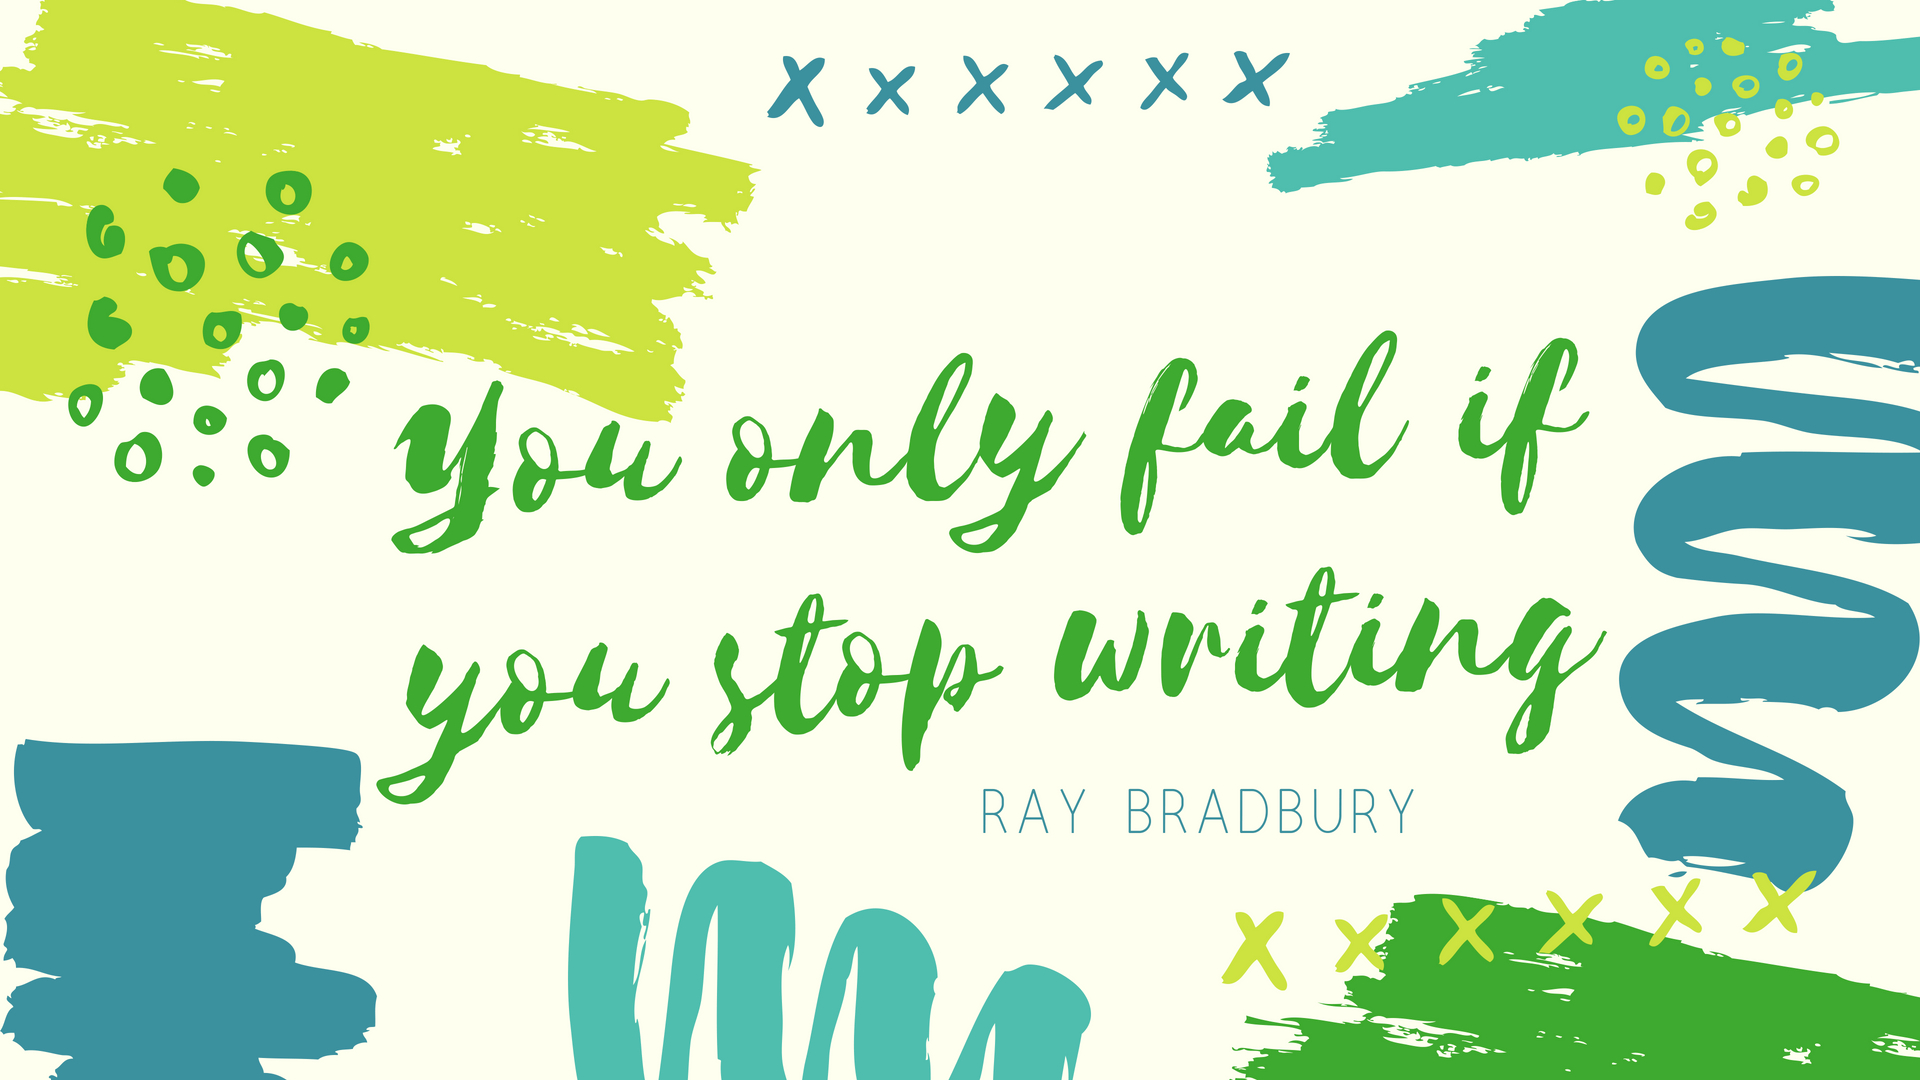 7 Computer Wallpapers To Inspire Your Writing Penn Paper